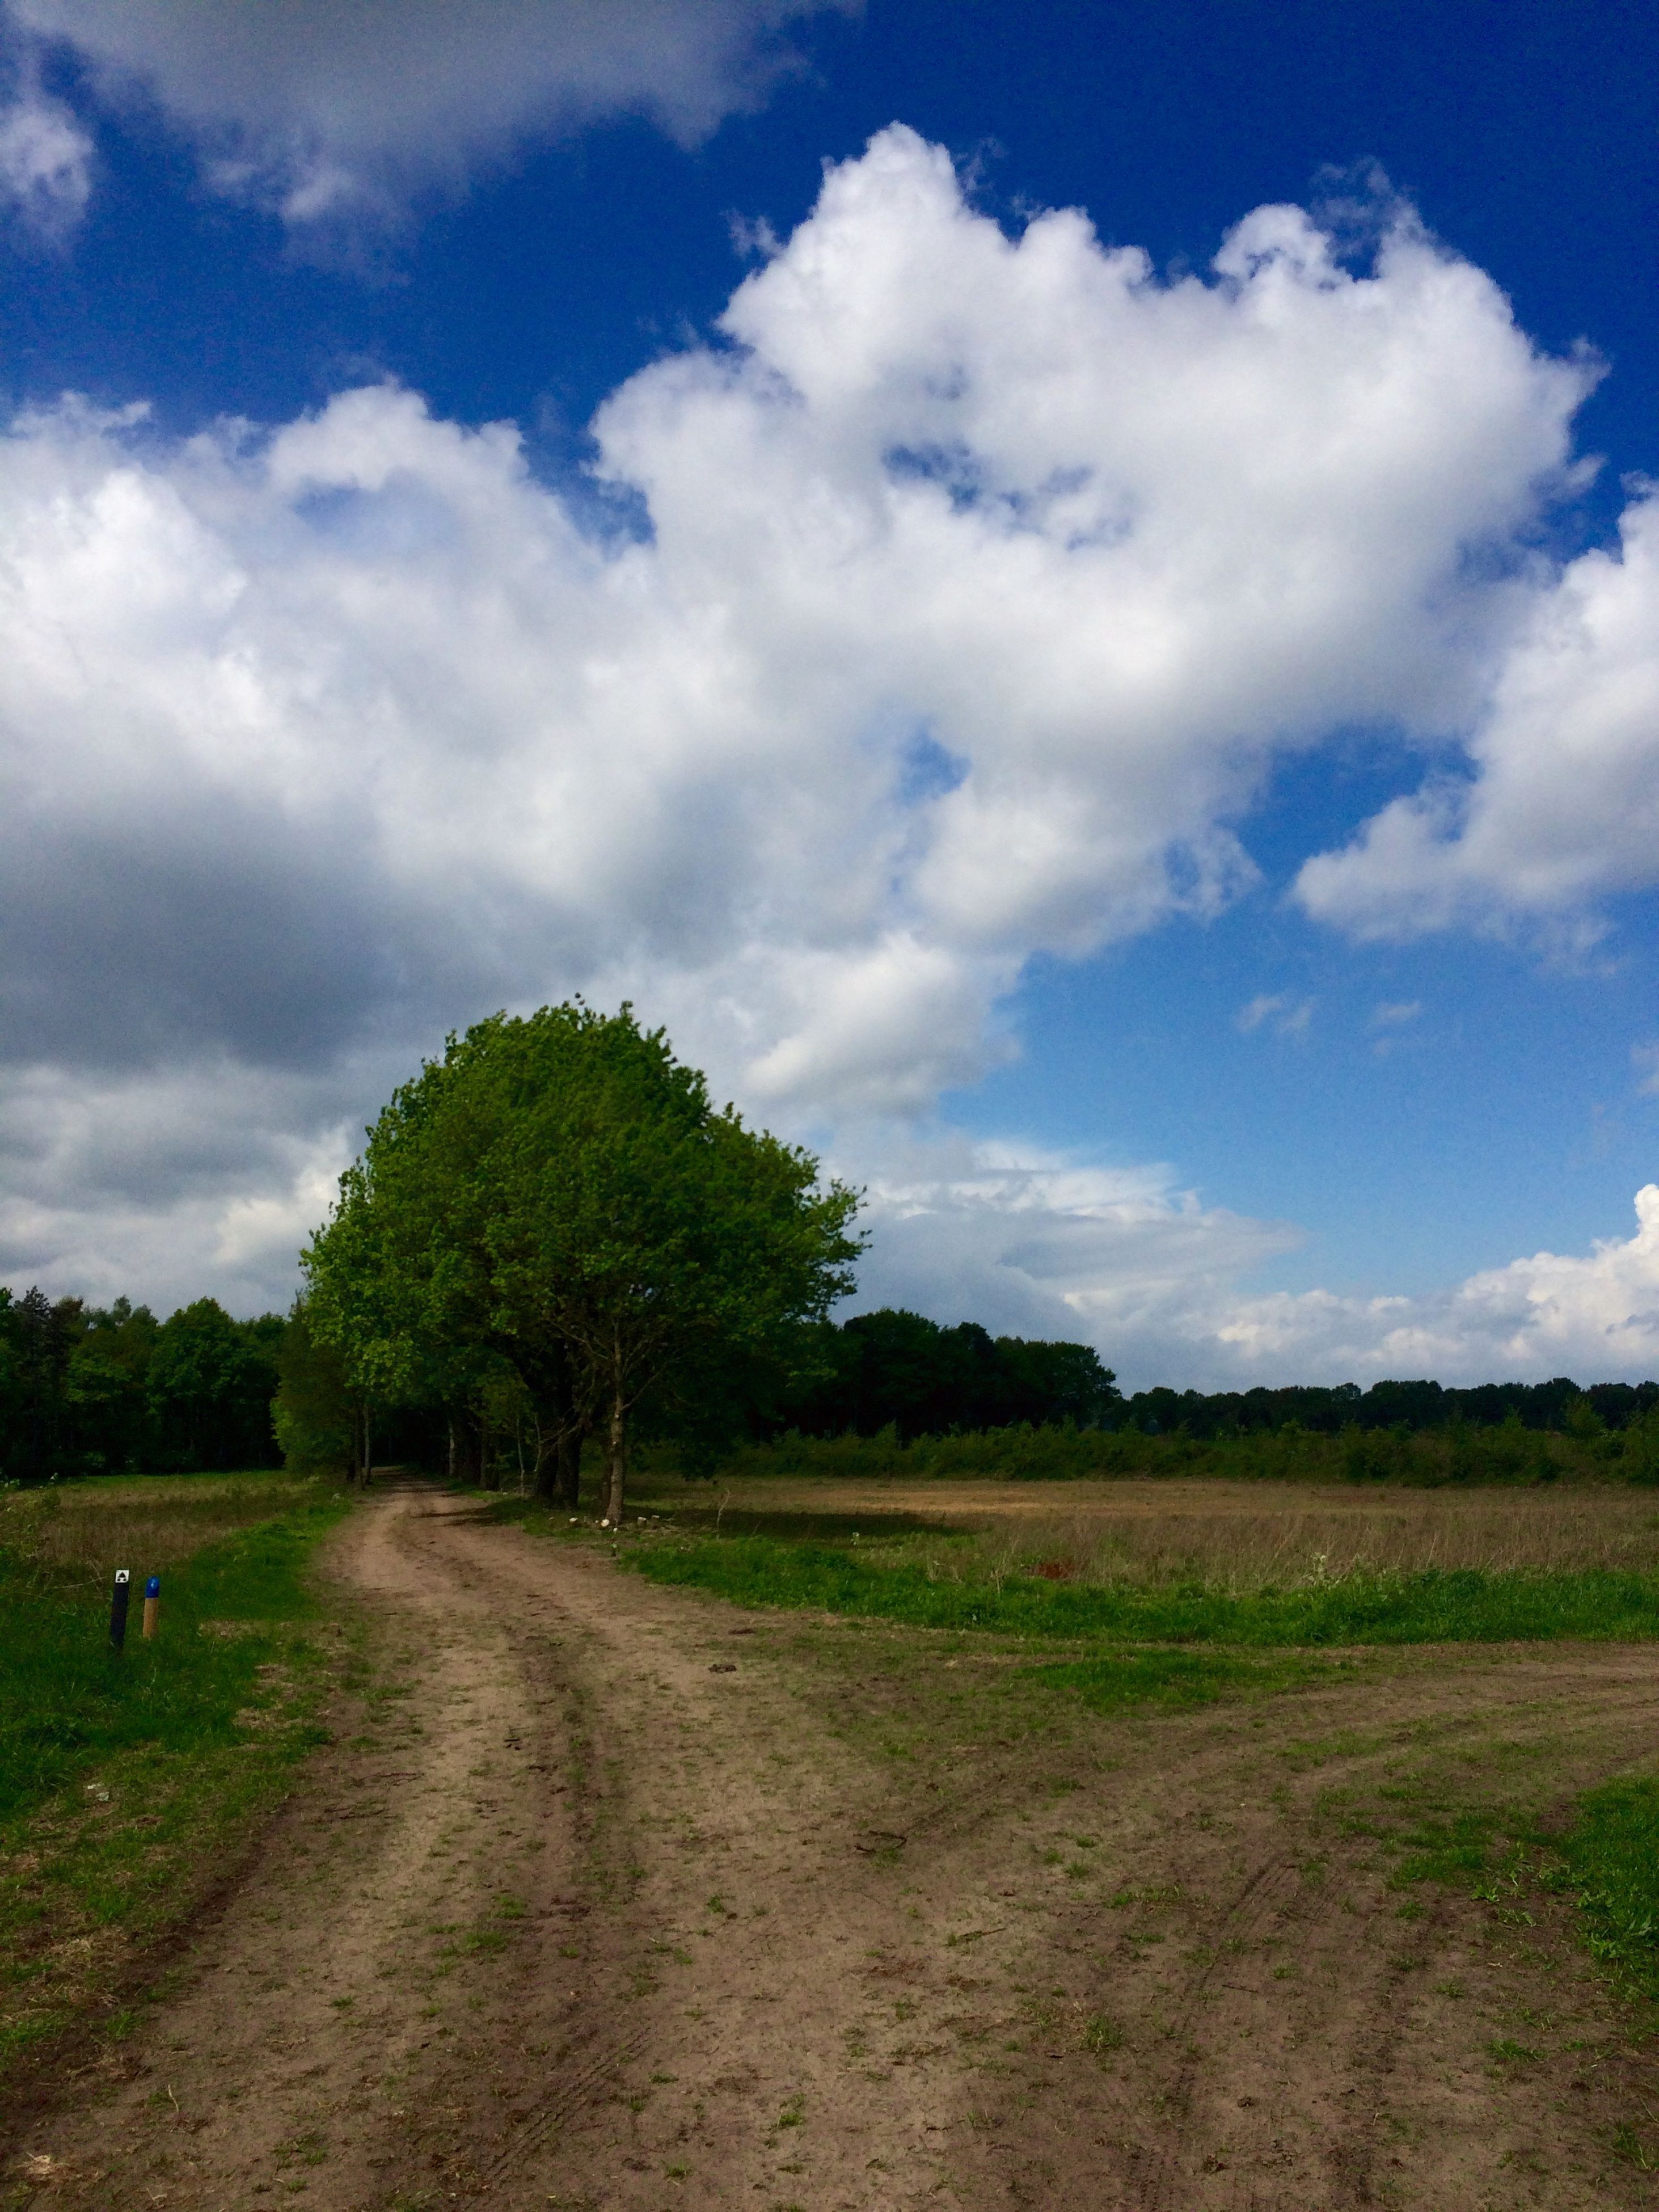 sky, tree, cloud - sky, tranquility, tranquil scene, landscape, cloud, grass, nature, the way forward, field, scenics, cloudy, growth, beauty in nature, dirt road, day, green color, non-urban scene, outdoors